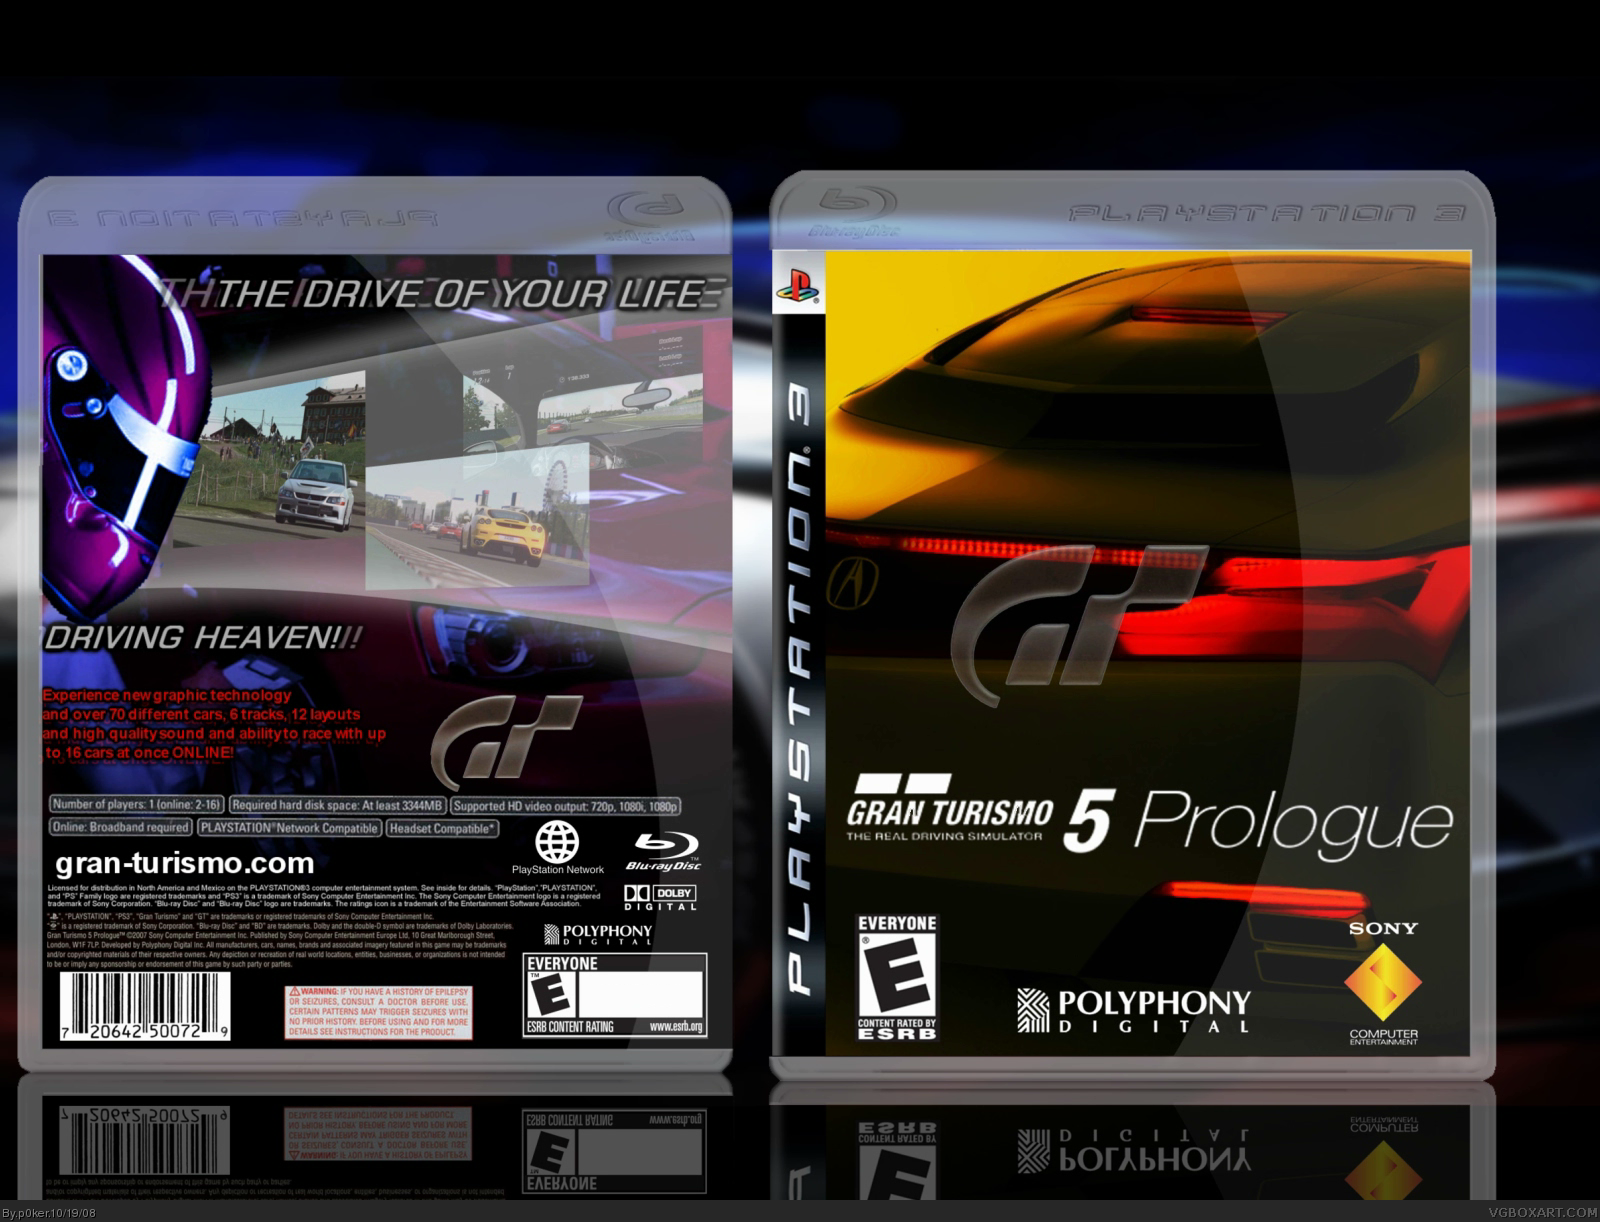 gran turismo 5 prologue playstation 3 box art cover by p0ker. Black Bedroom Furniture Sets. Home Design Ideas